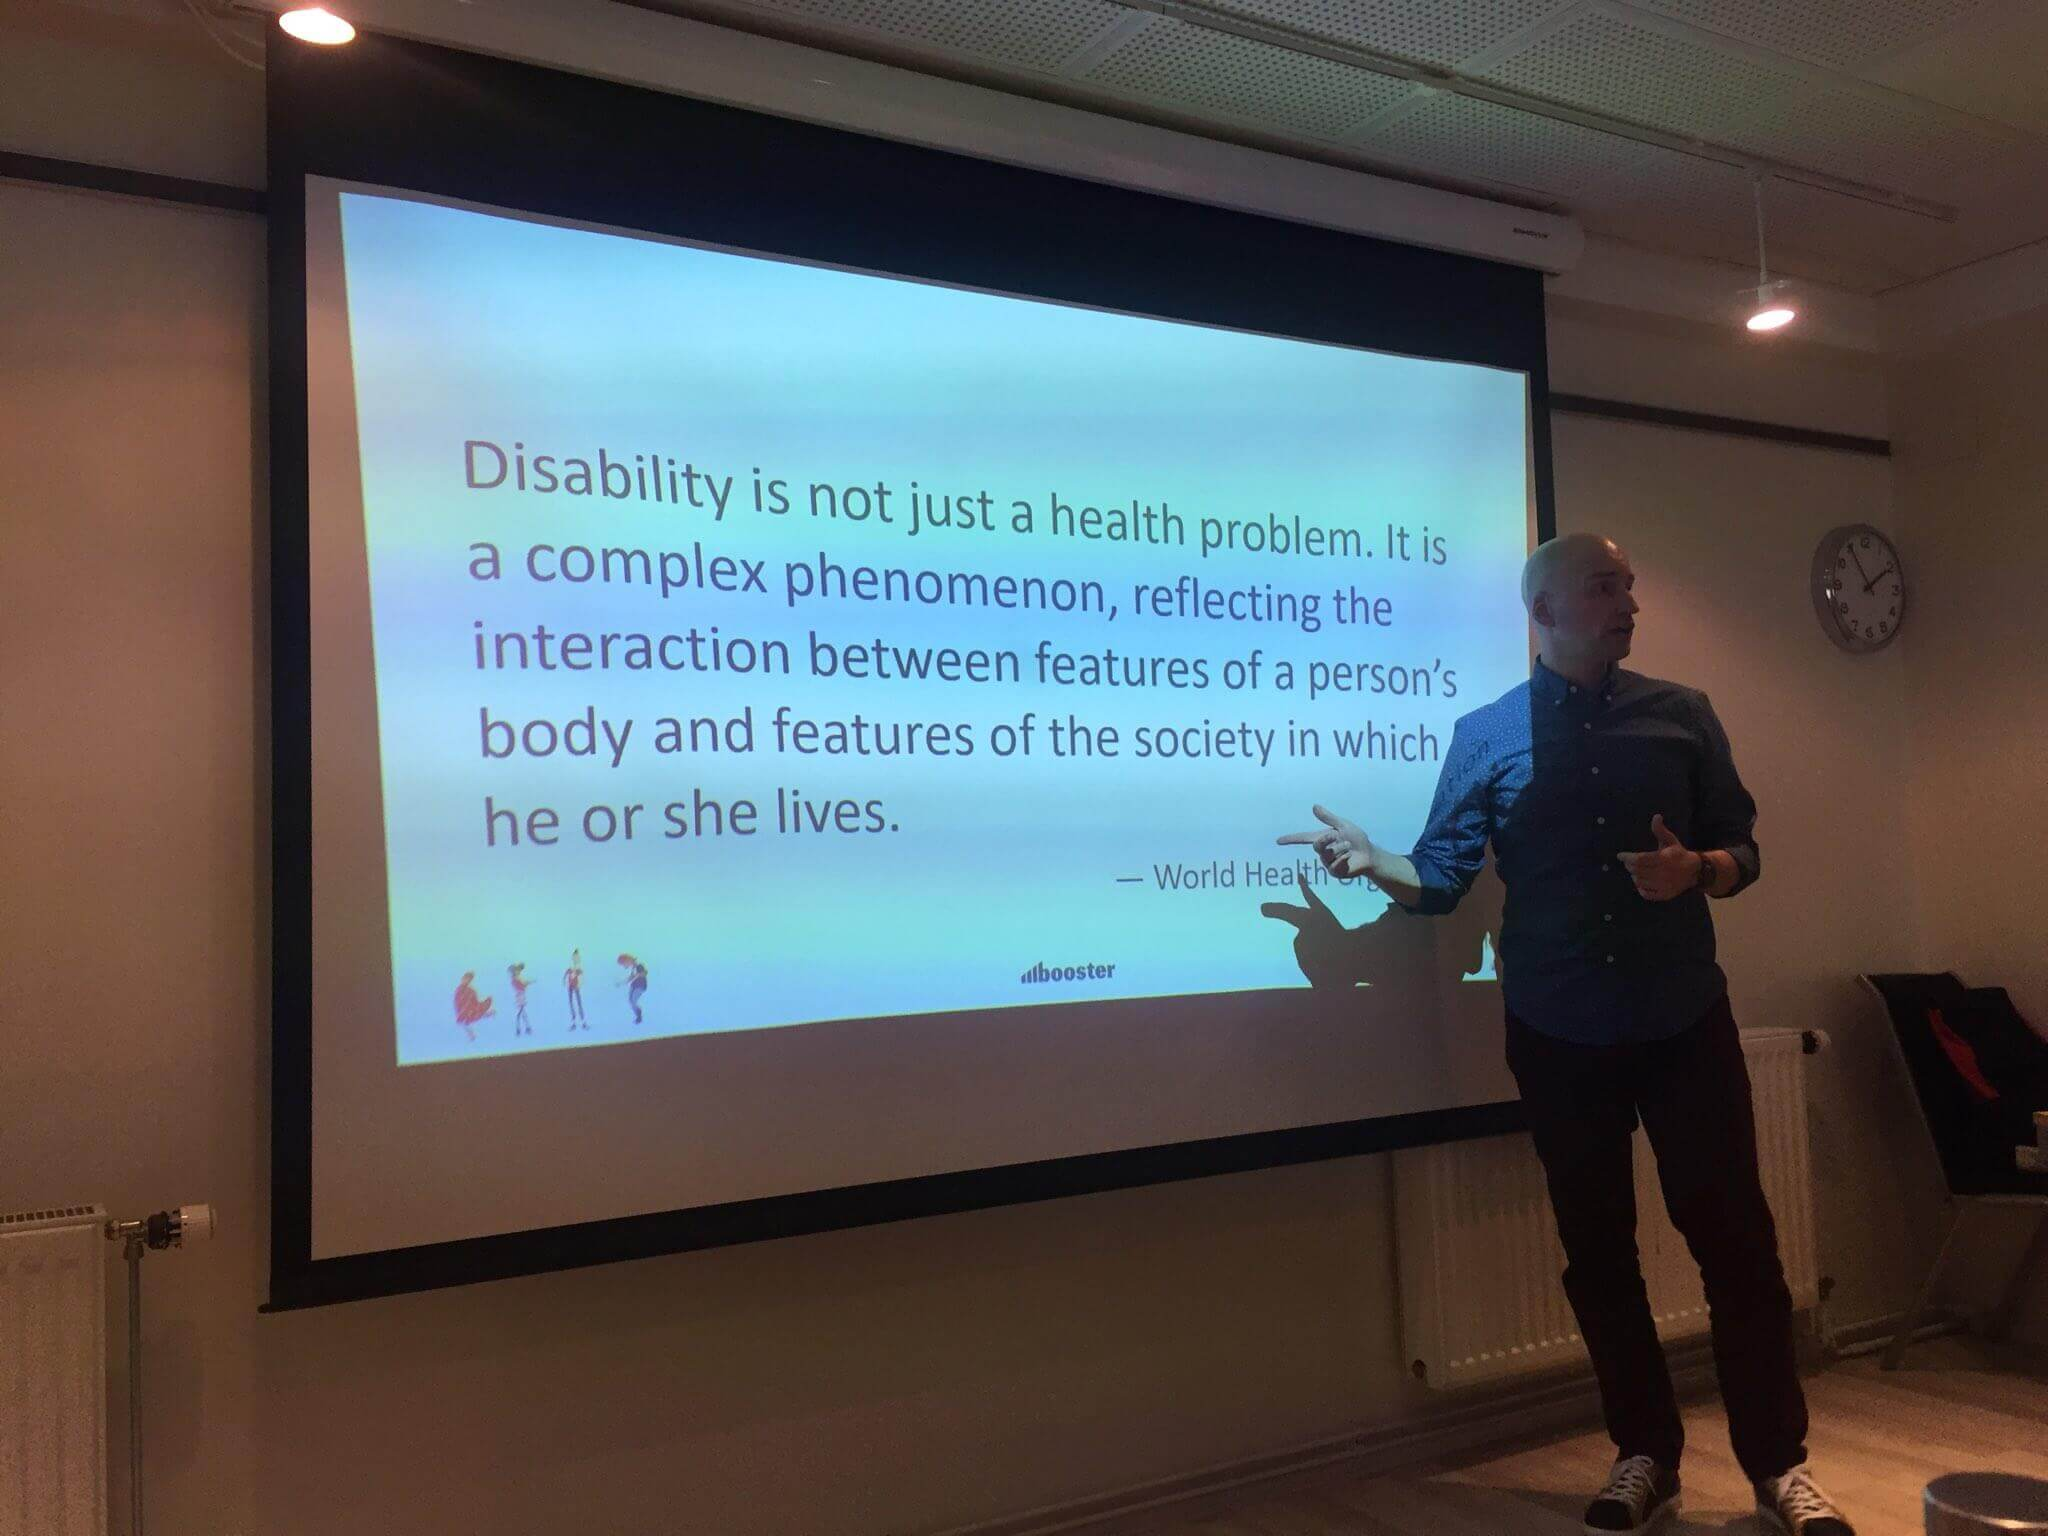 Disability is not just a health problem. It is a complex phenomenon, reflecting the interaction between features of a person's body and features of the society in which he or she lives.